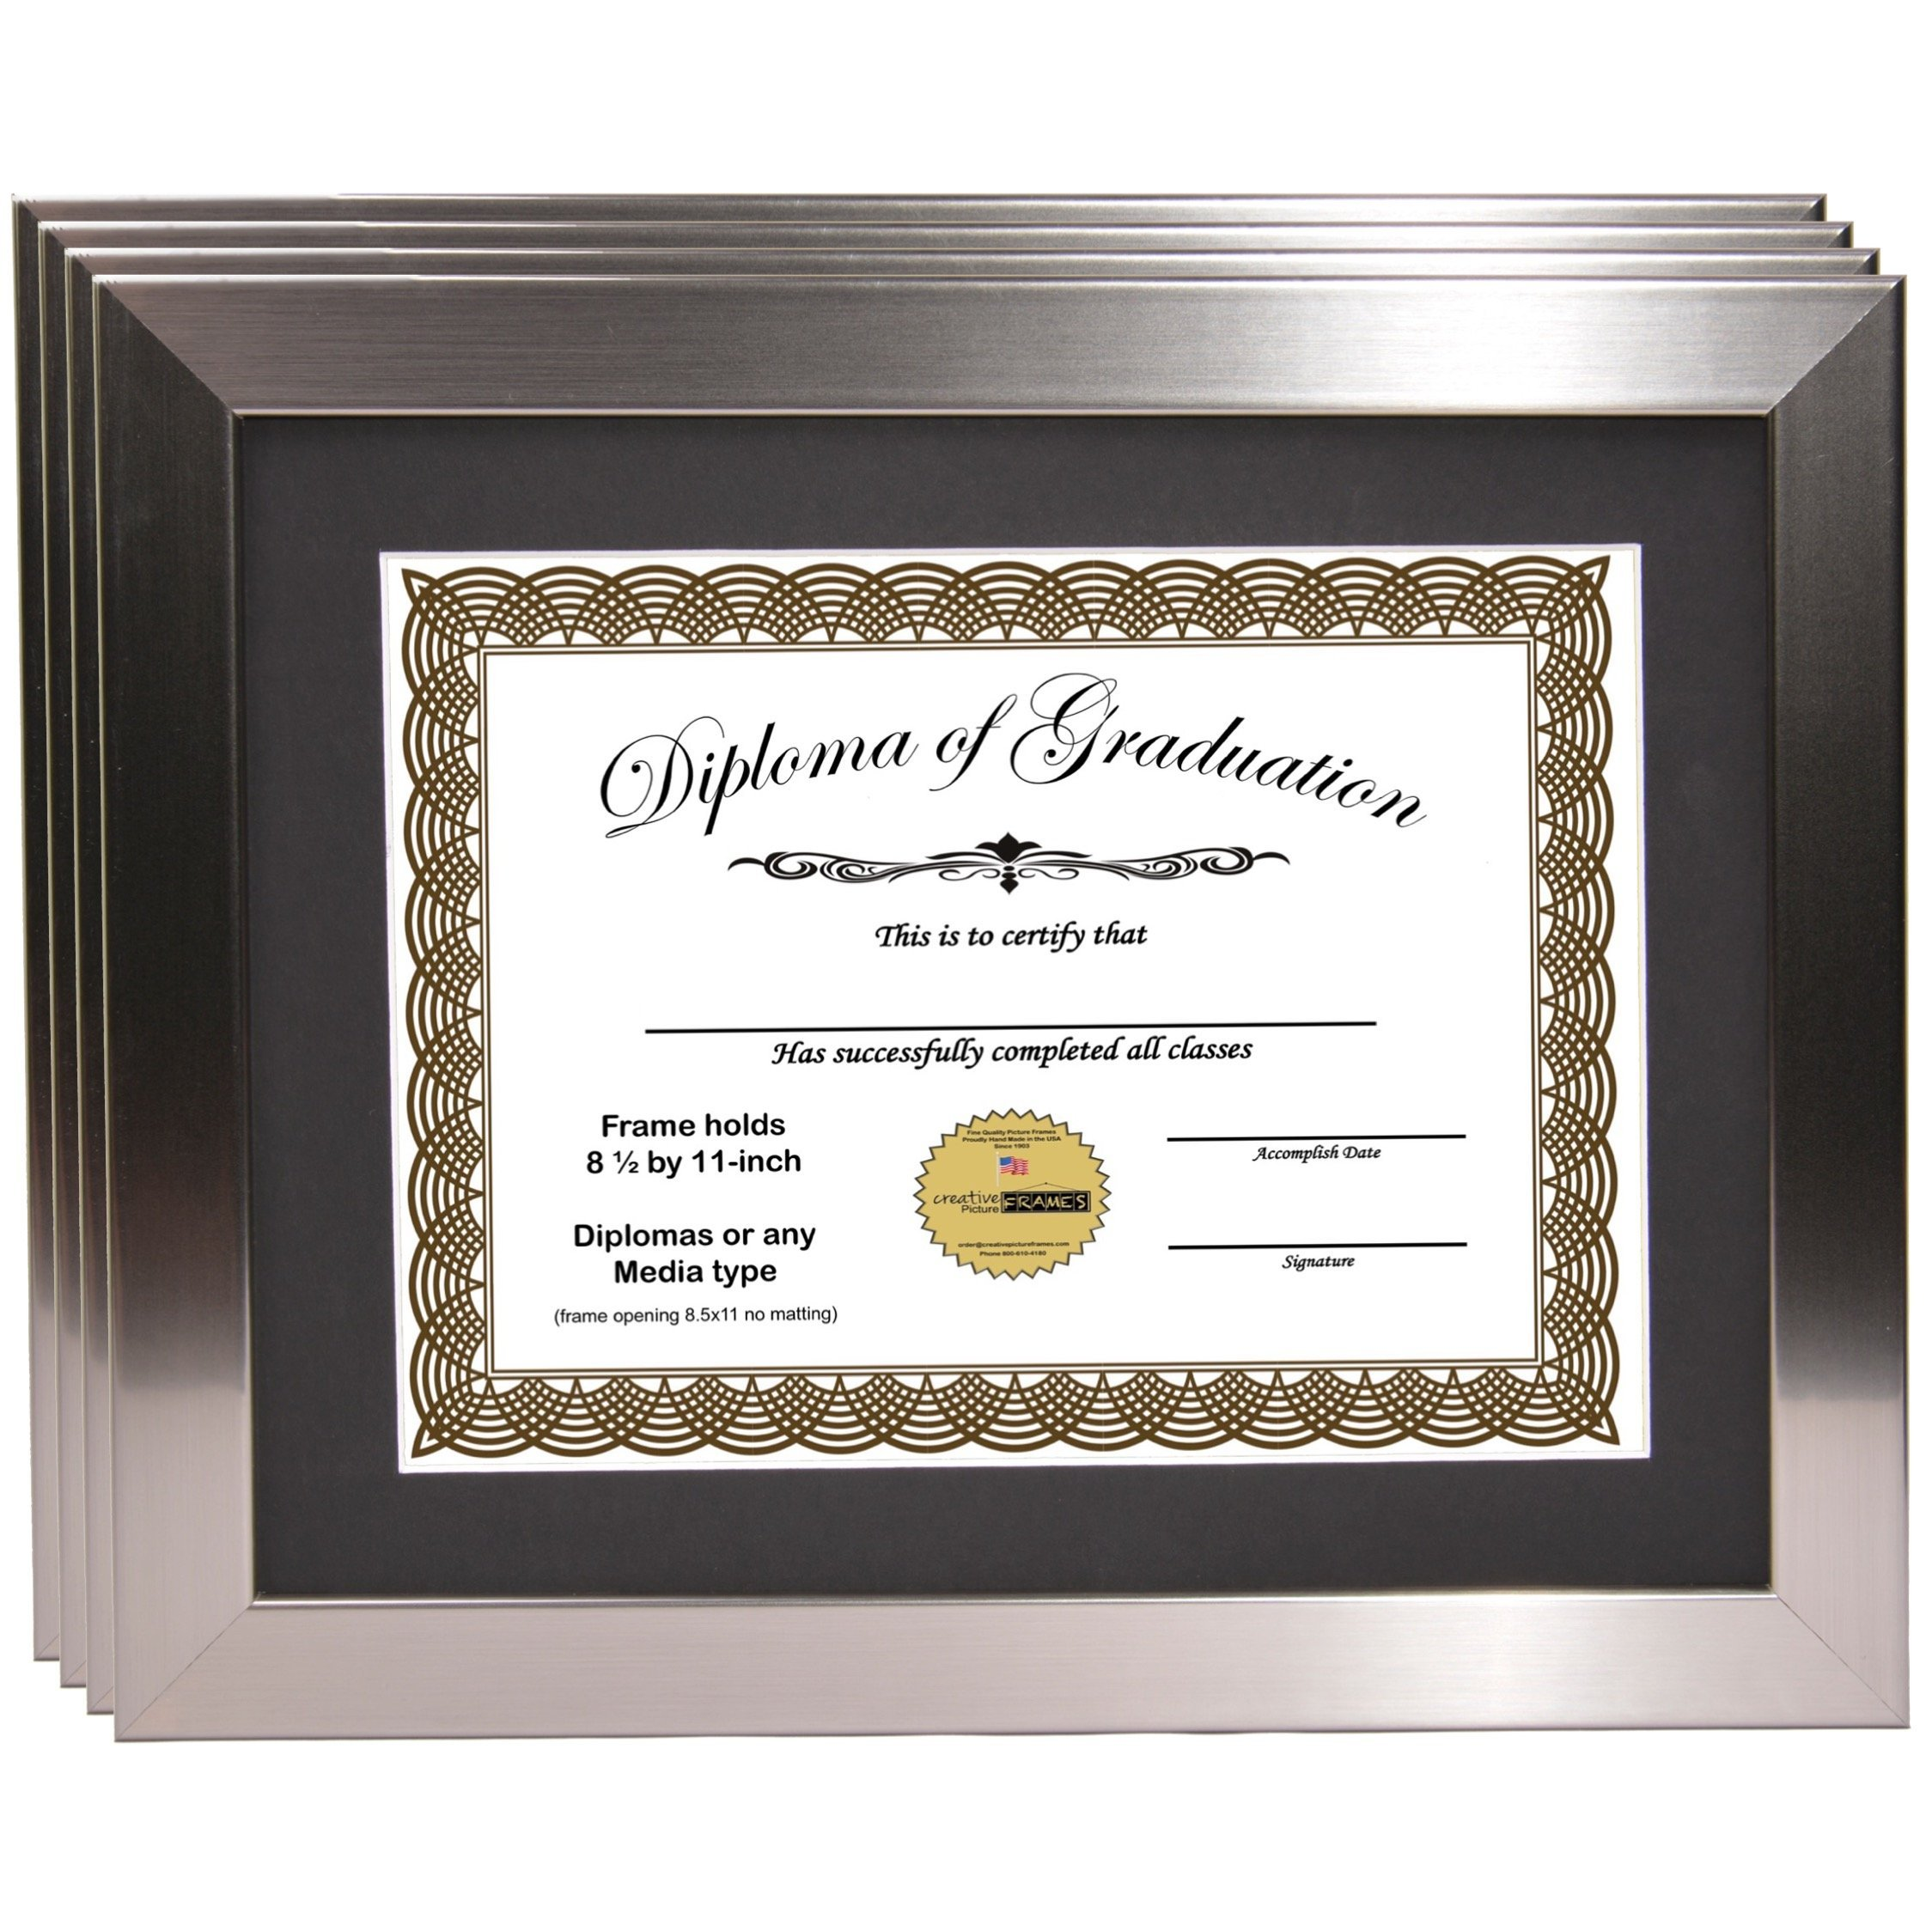 CreativePF [11x14ss] Stainless Steel Finish Diploma Frame with 11x14-inch White Mat to Hold 8.5 by 11-inch Graduation Documents w/ Stand and Wall Hanger (Black Mat-Stainless Steel Frame, 4) by Creative Picture Frames